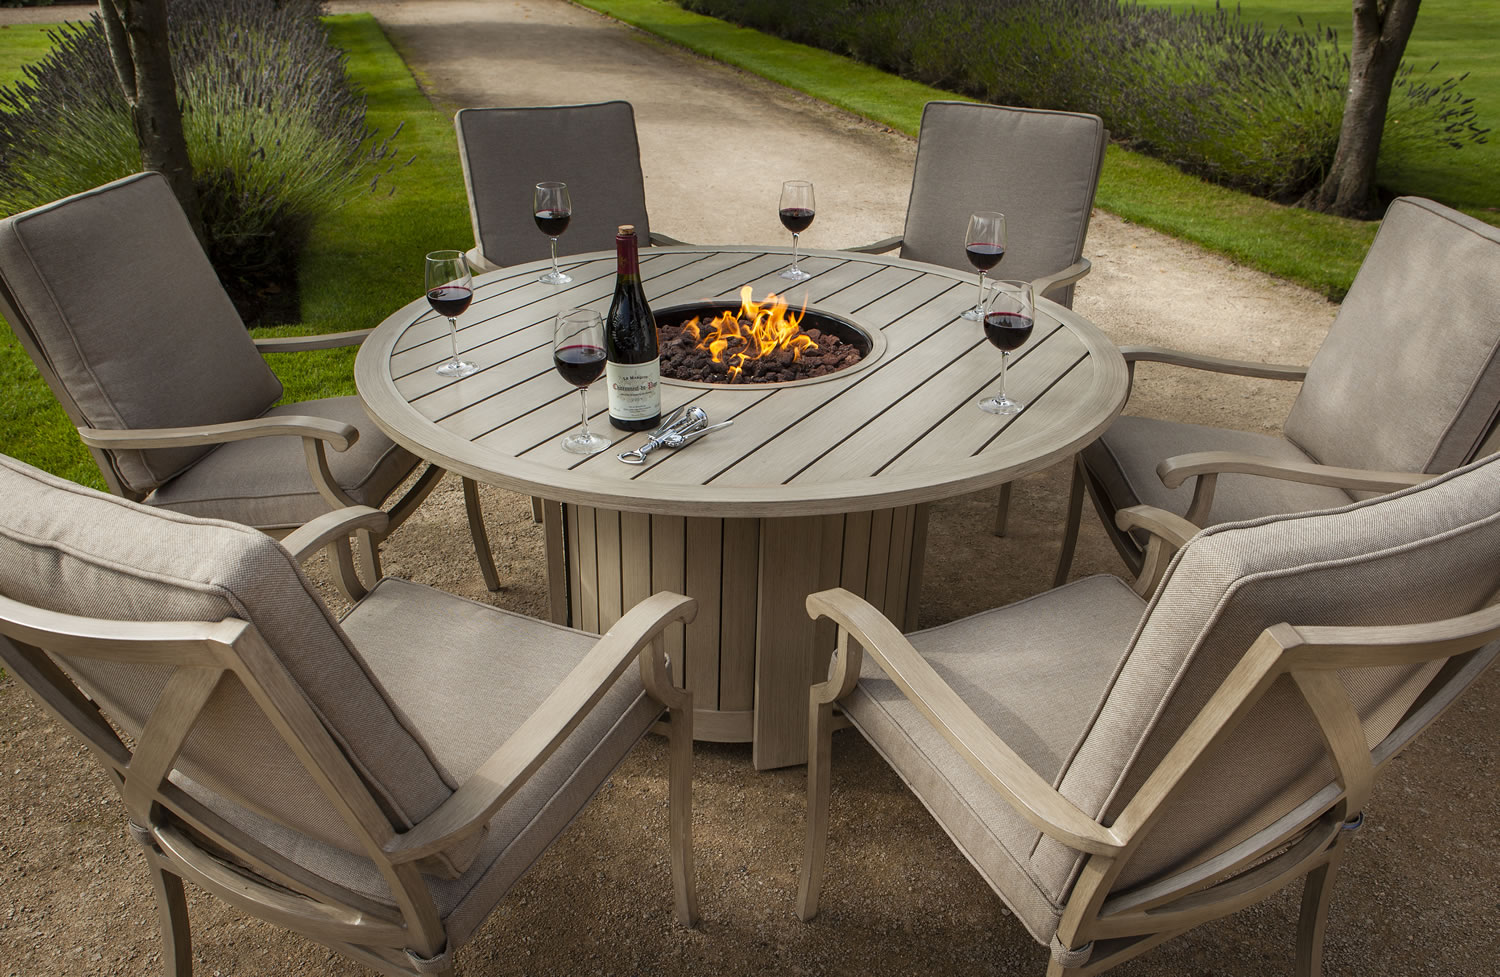 Portland Round 6 Seater Dining Set With Fire Pit 1650 Garden4Less UK Shop